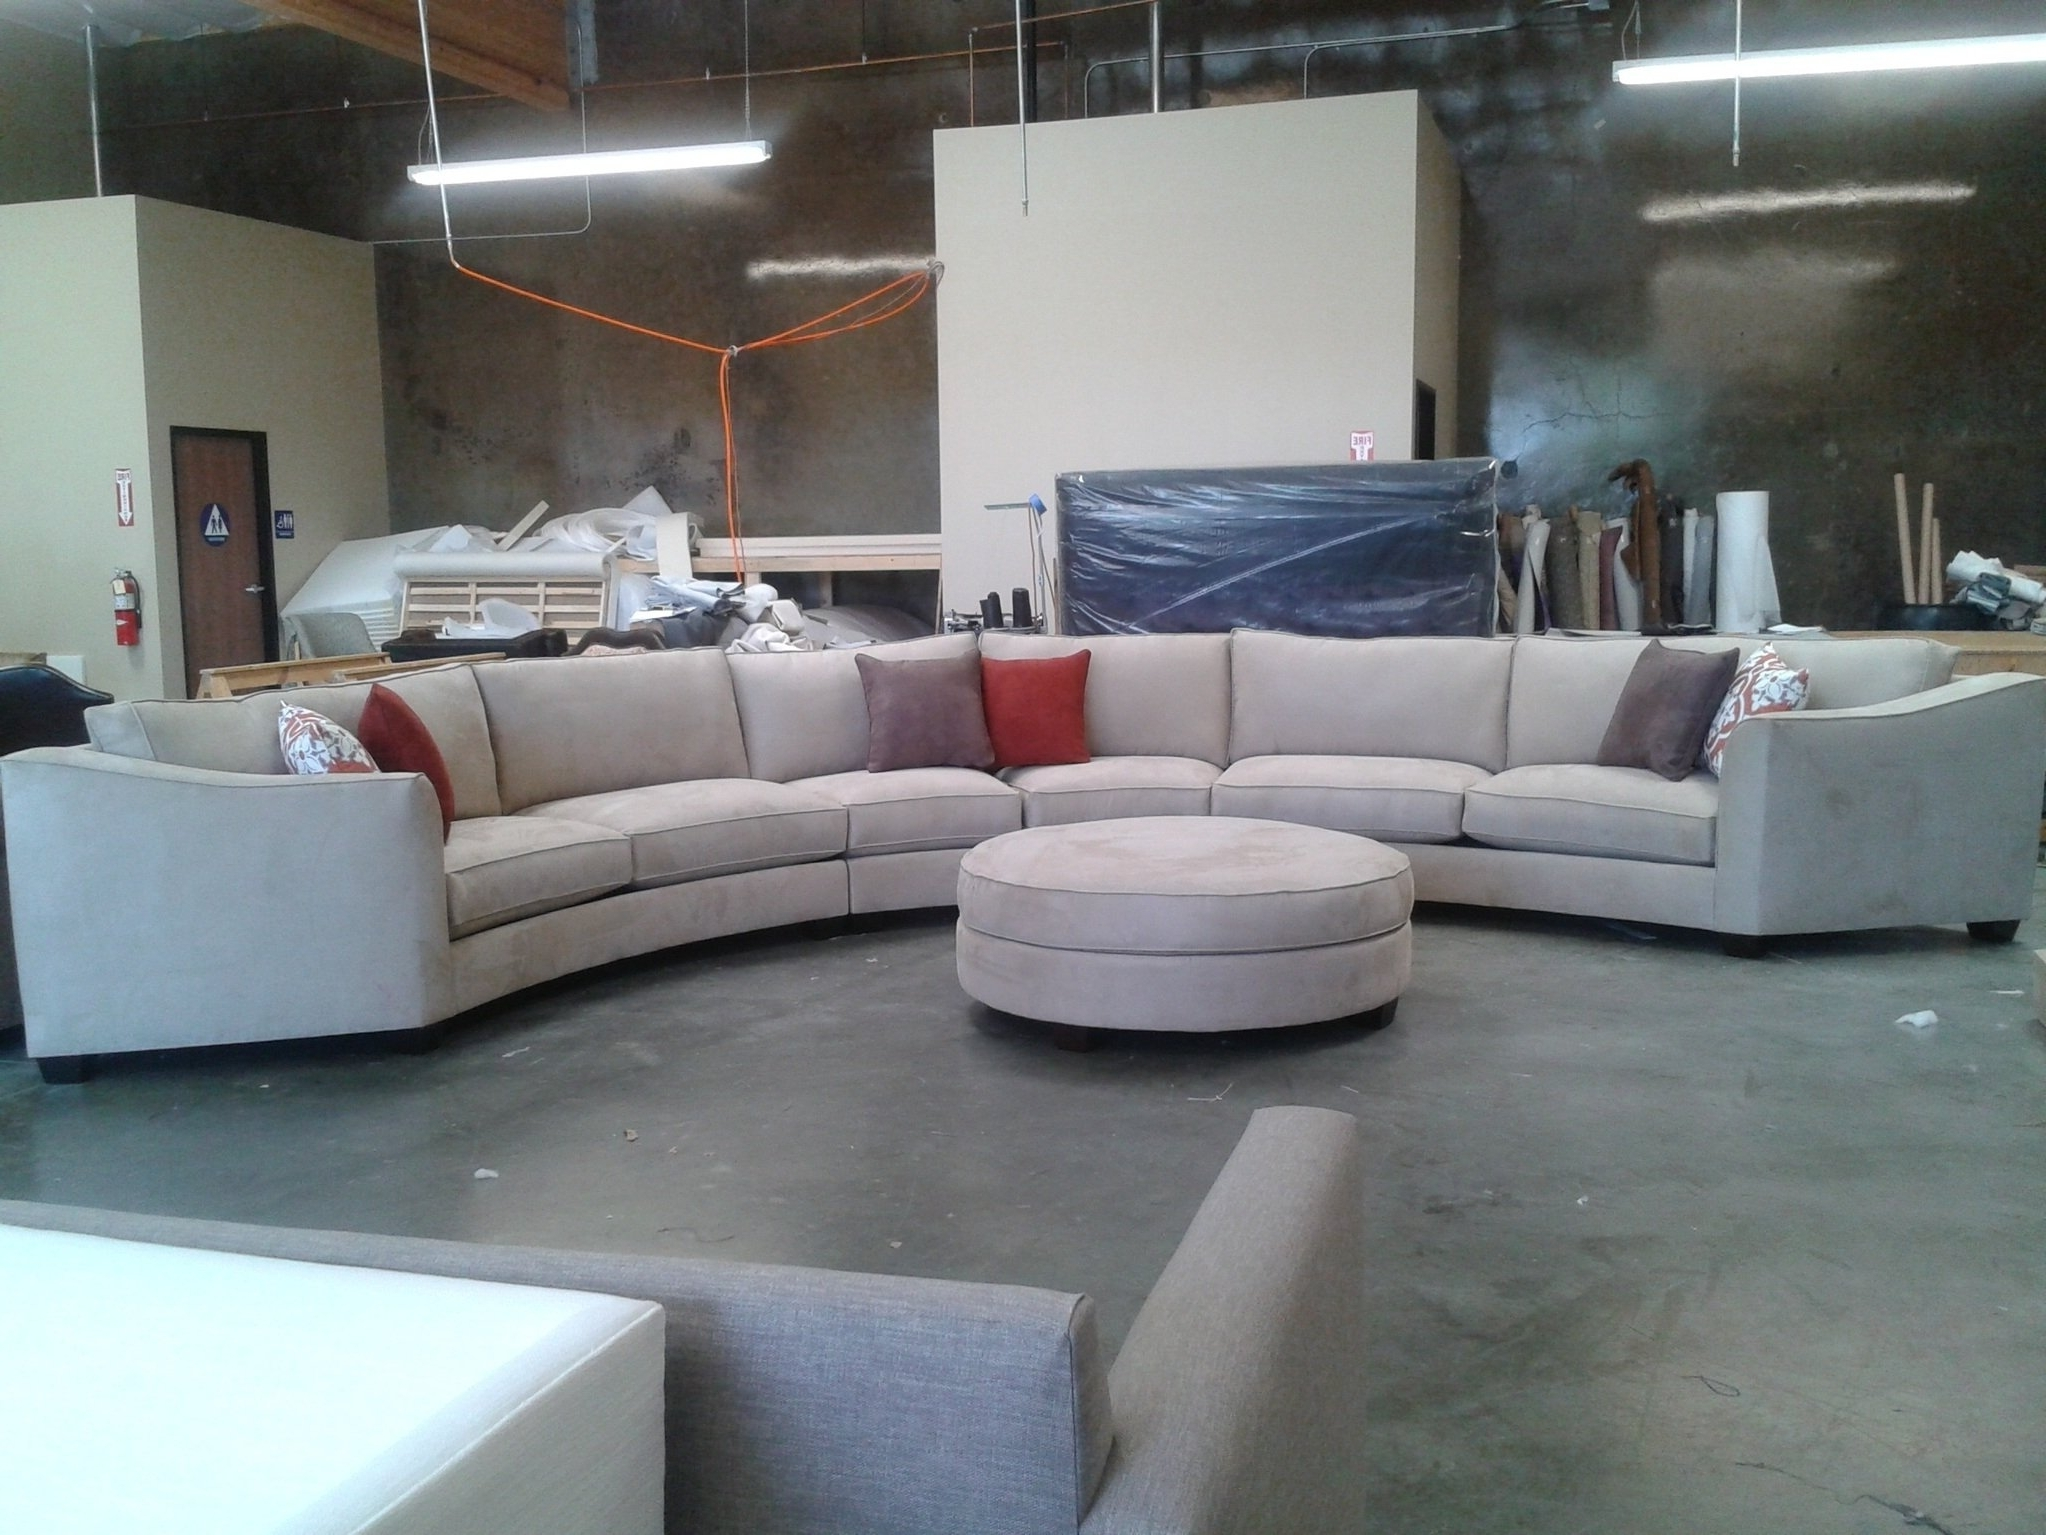 2017 Circular Sectional Sofas For Curved Sectional Sofa Set Rich Comfortable Upholstered Fabric In (View 6 of 15)